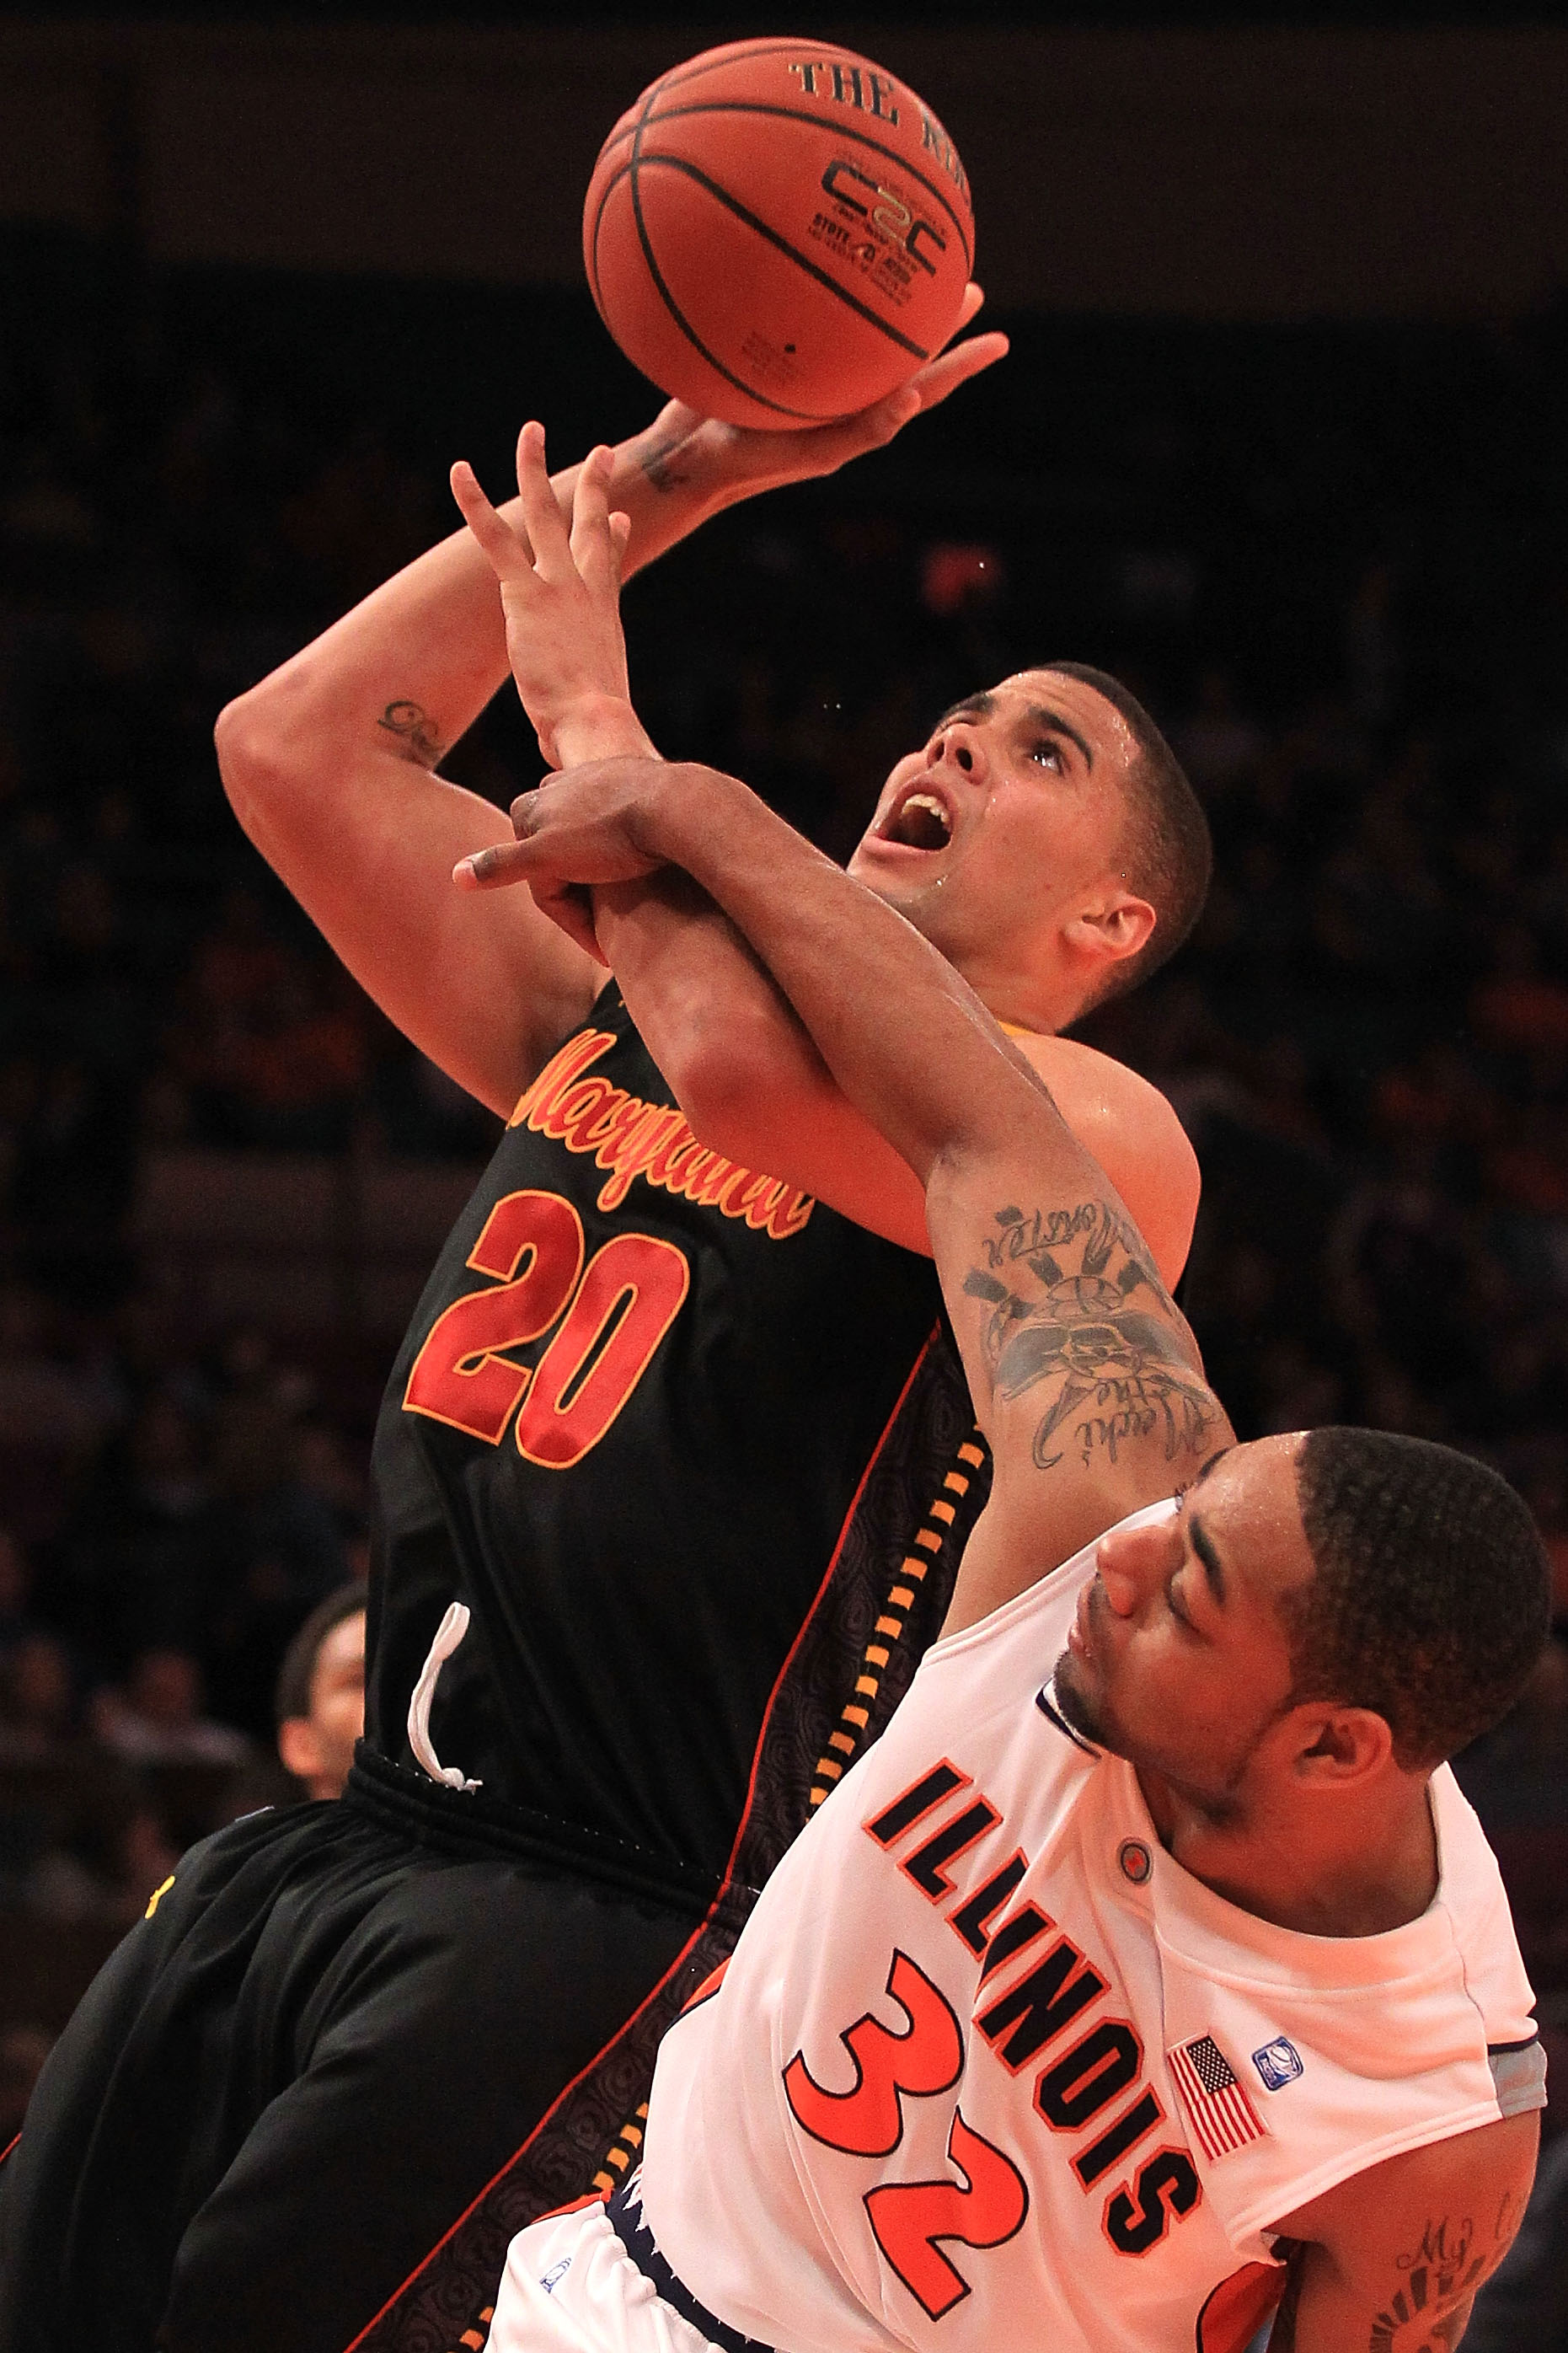 NEW YORK - NOVEMBER 19:  Jordan Williams #20 of the Maryland Terrapins is fouled by Demetri McCamey #32 of the Illinois Fighting Illini during the 2k Sports Classic at Madison Square Garden on November 19, 2010 in New York, New York.  (Photo by Chris McGr